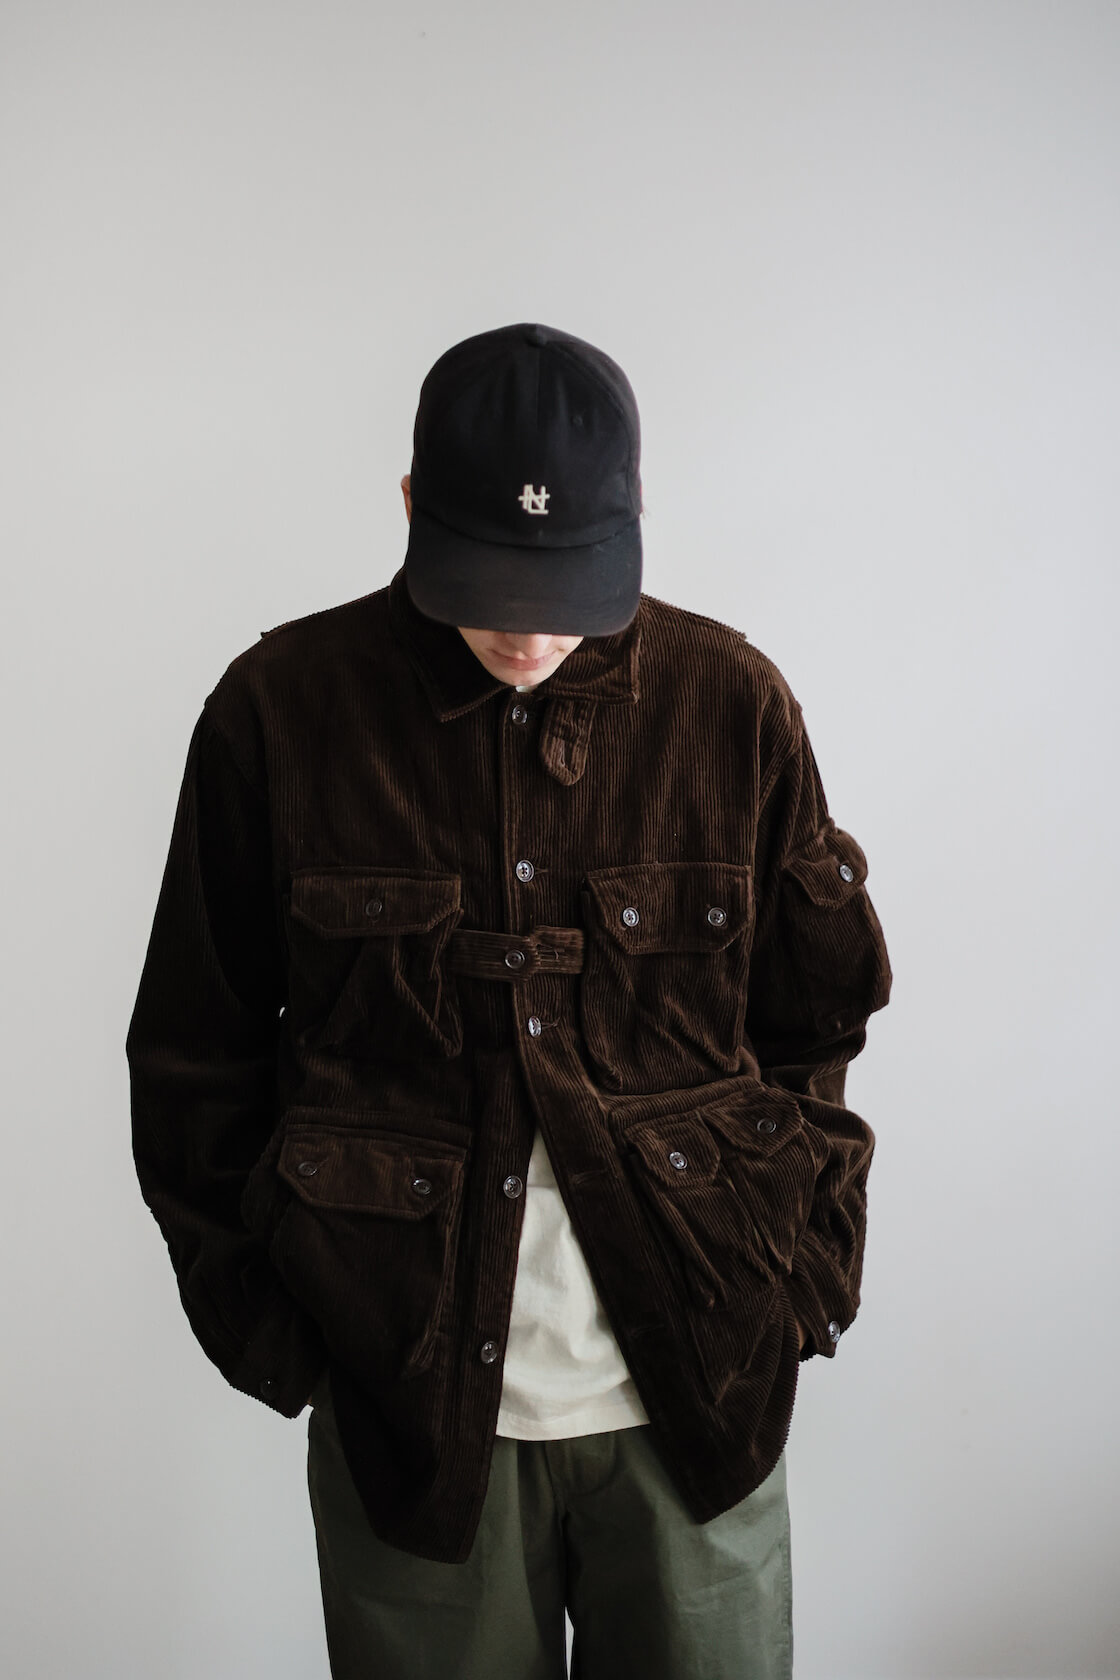 engineered garments explorer shirt jacket, lady white co. our t-shirt, orslow new yorker pant and hender scheme slouchy shoes on body